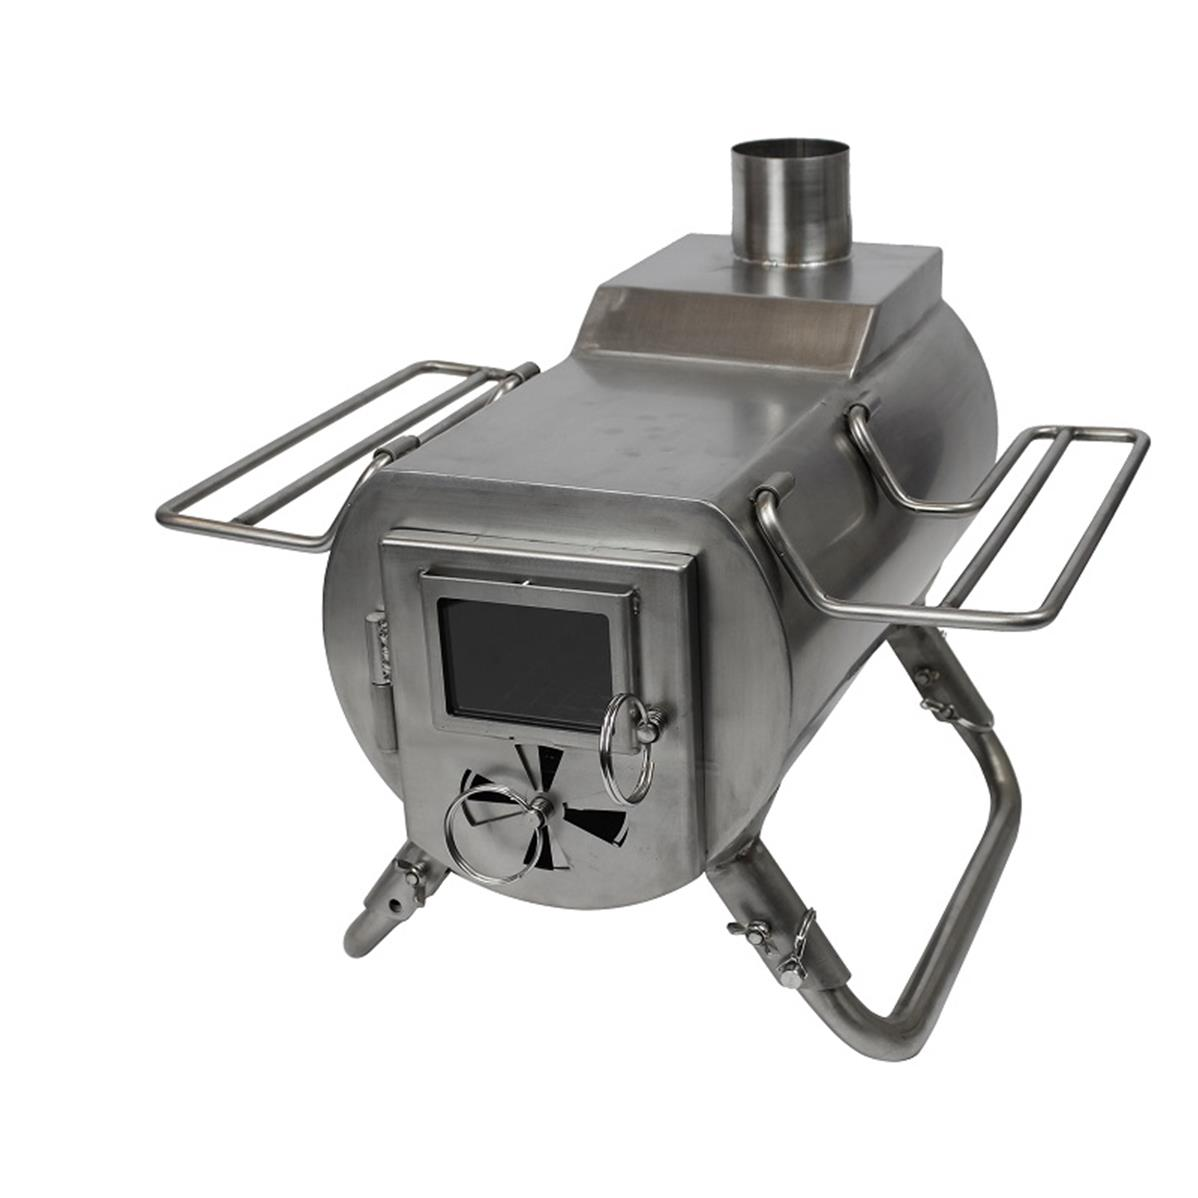 Gstove Heat View Camping Stove Tamarack Outdoors